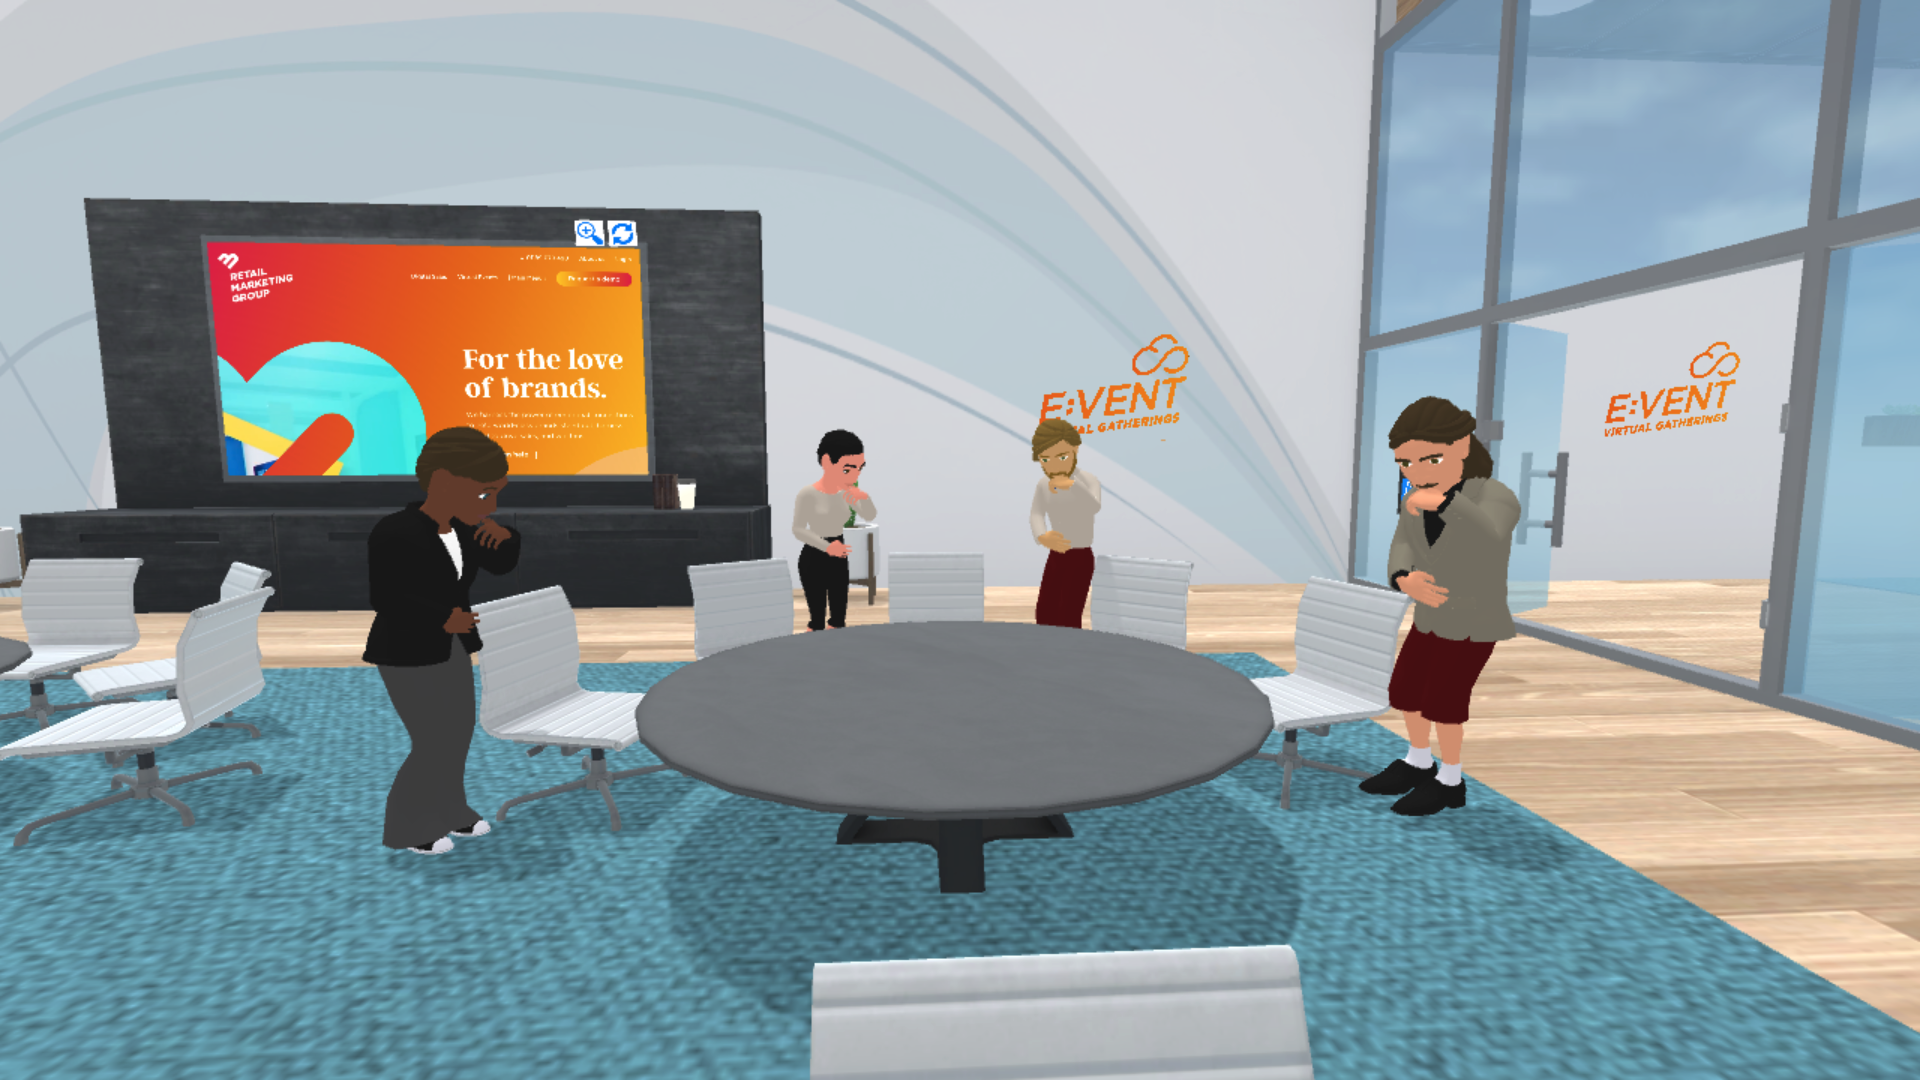 Virtual events with colleagues